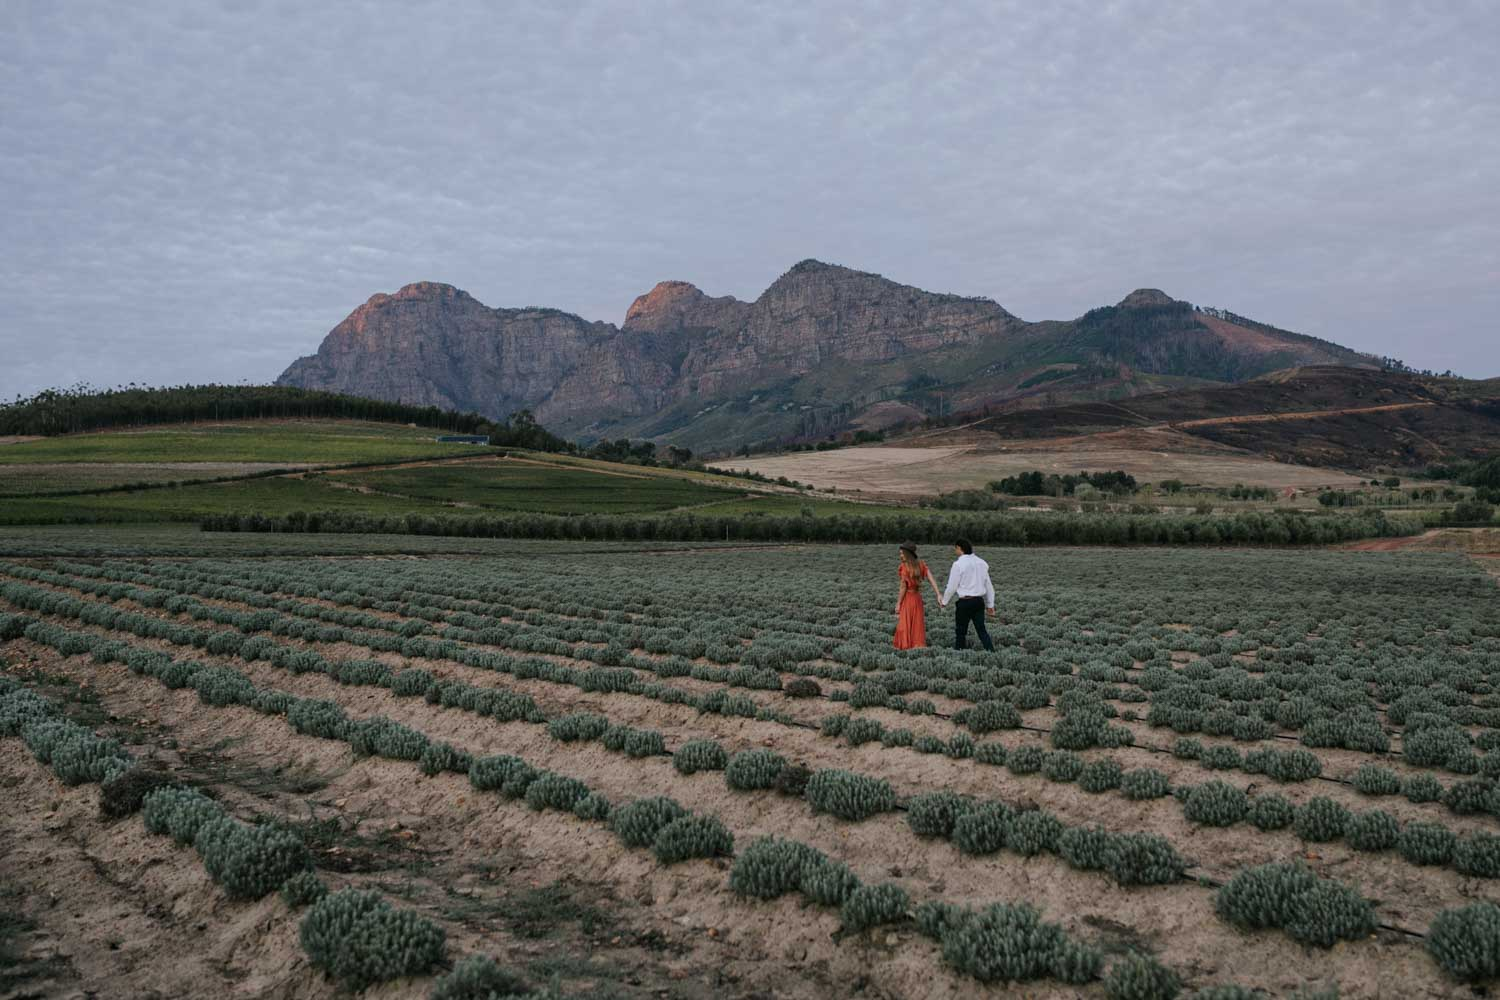 Boho Gypsy Couple Engagement Shoot Walk In Babylonstoren Farm Fields Below Mountains